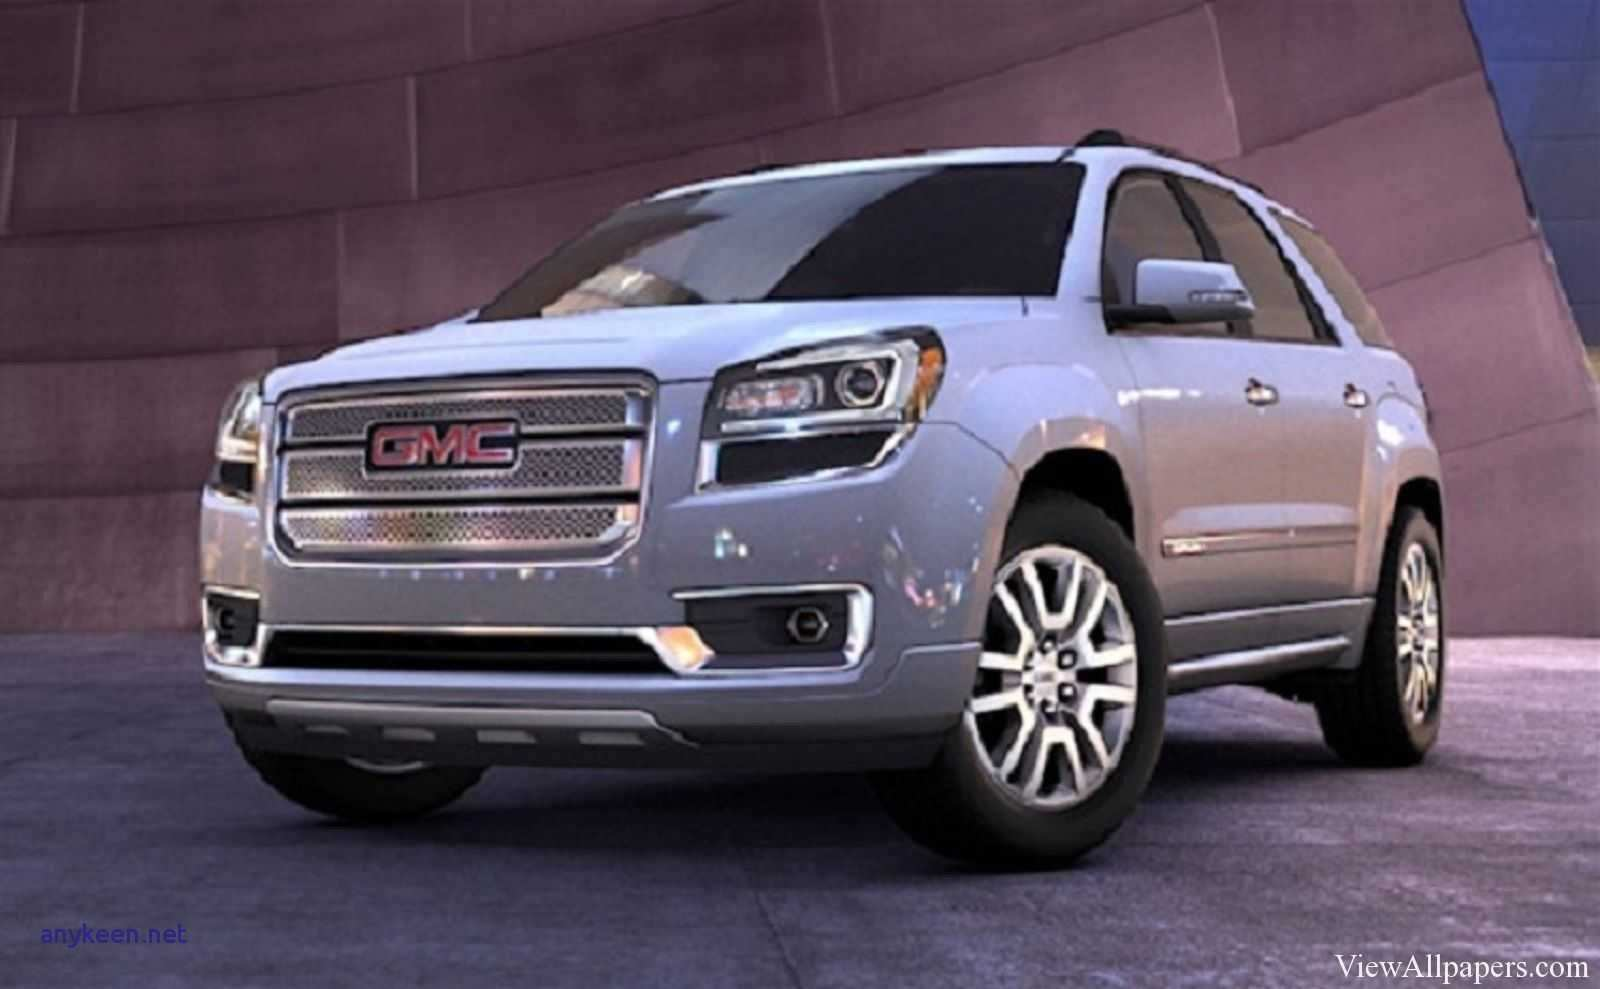 52 Best Review Gmc Envoy 2020 Exterior with Gmc Envoy 2020